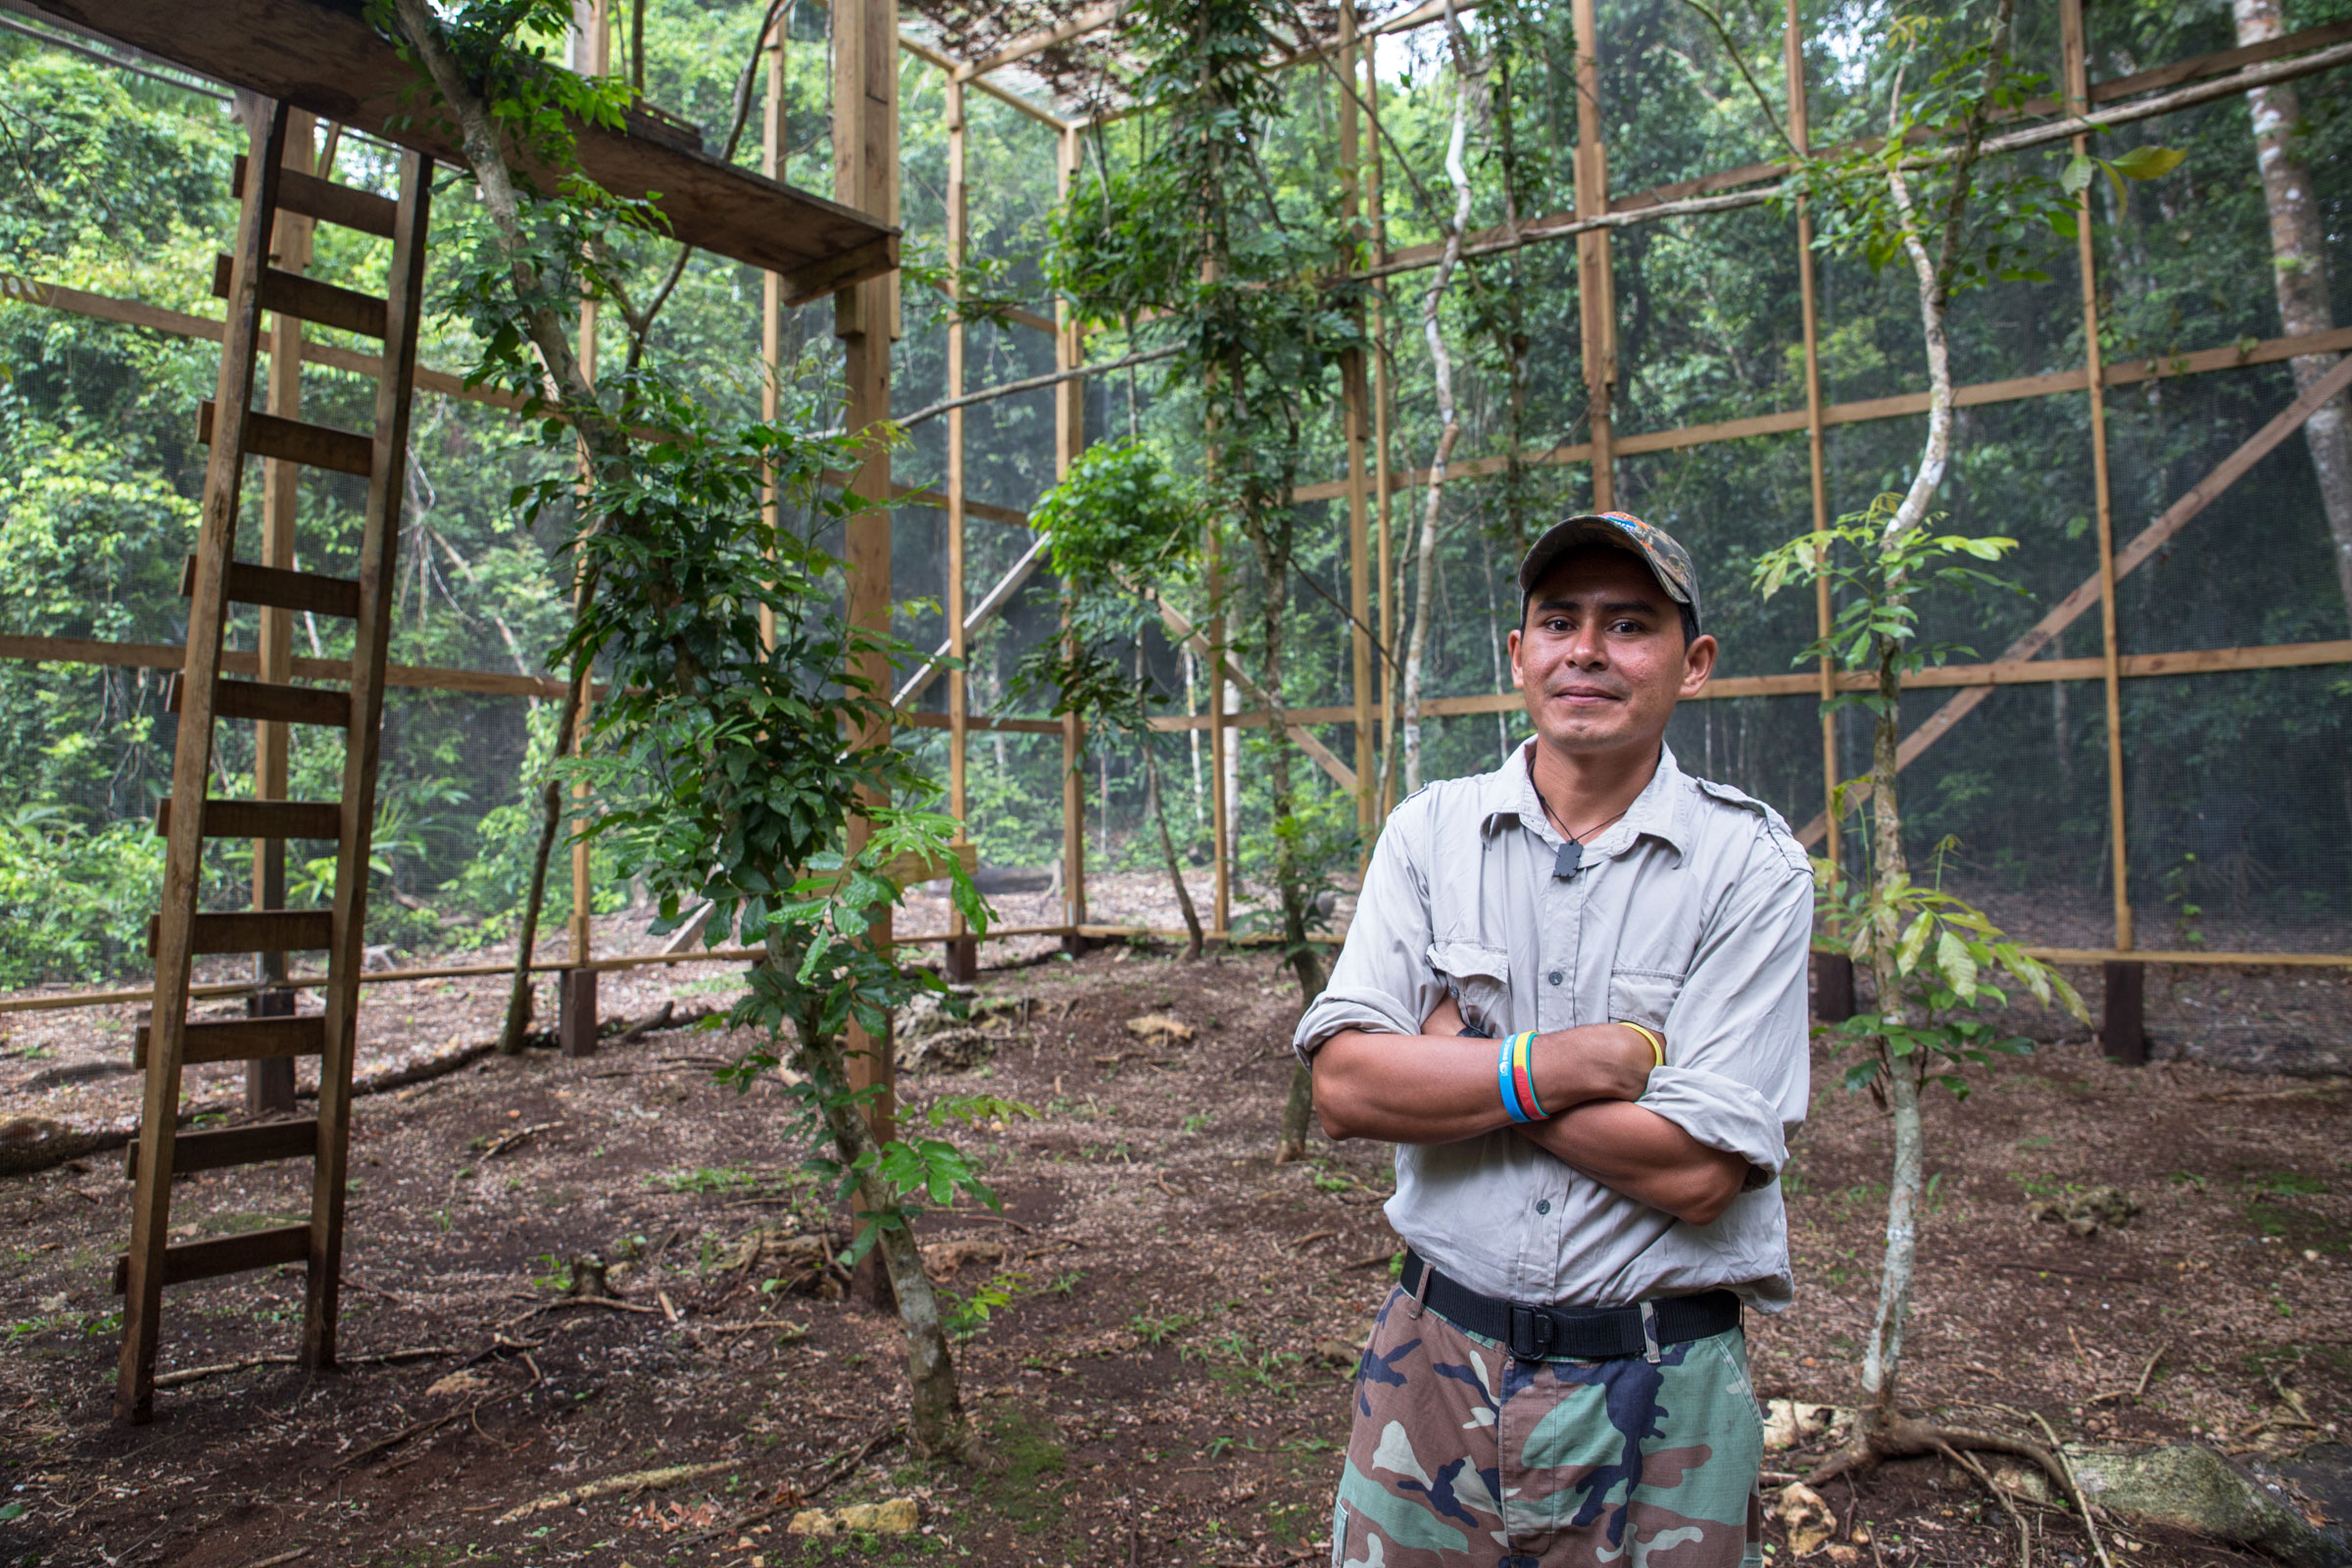 Biologist Boris Arevalo stands in FCD's aviary; macaw chicks graduate to the aviary once they fledge. Camilla Cerea/Audubon